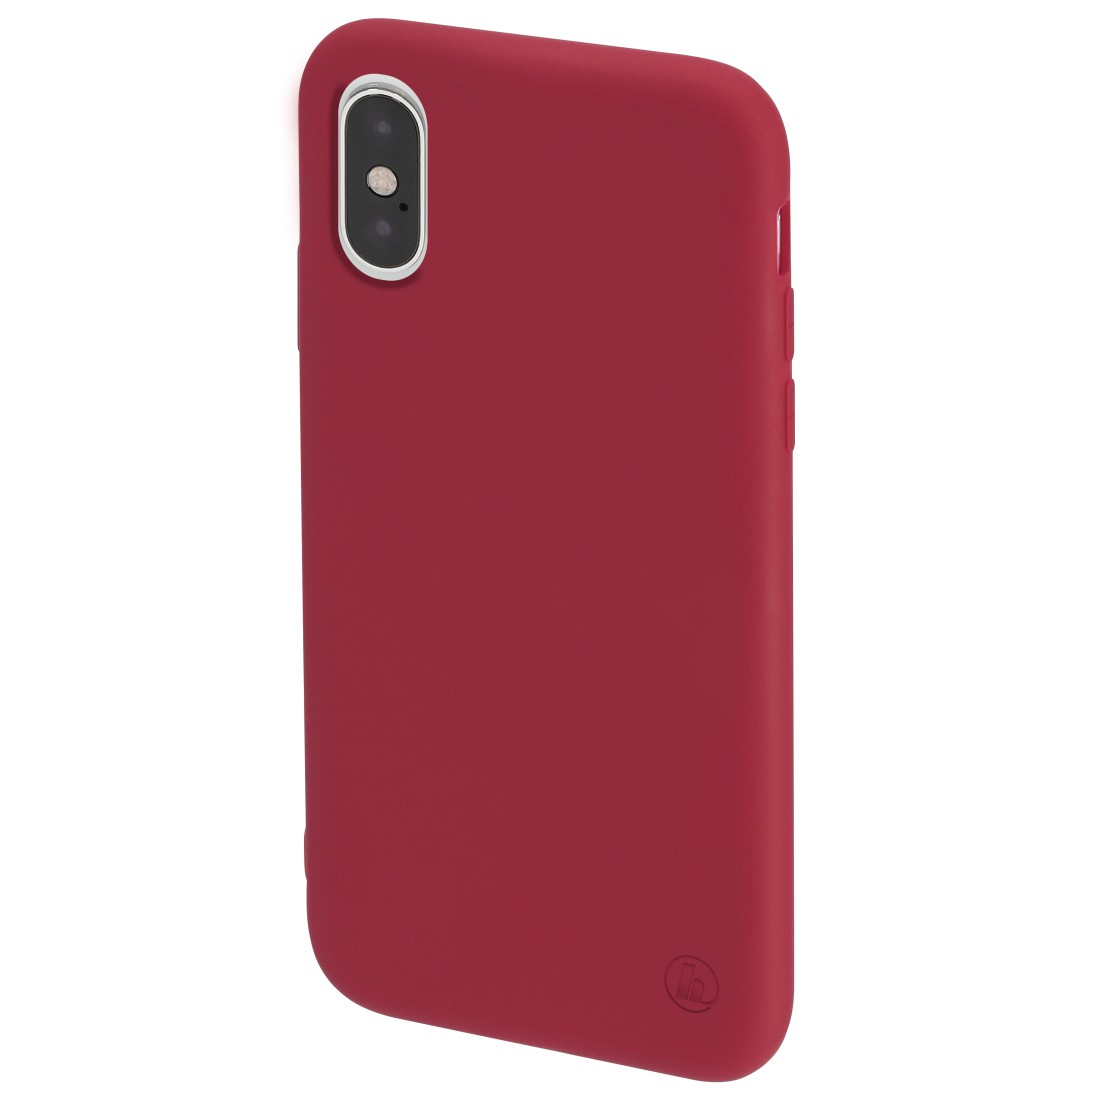 "abx3 High-Res Image 3 - Hama, Coque de protection ""Finest Feel"" pour Apple iPhone X/Xs, rouge"